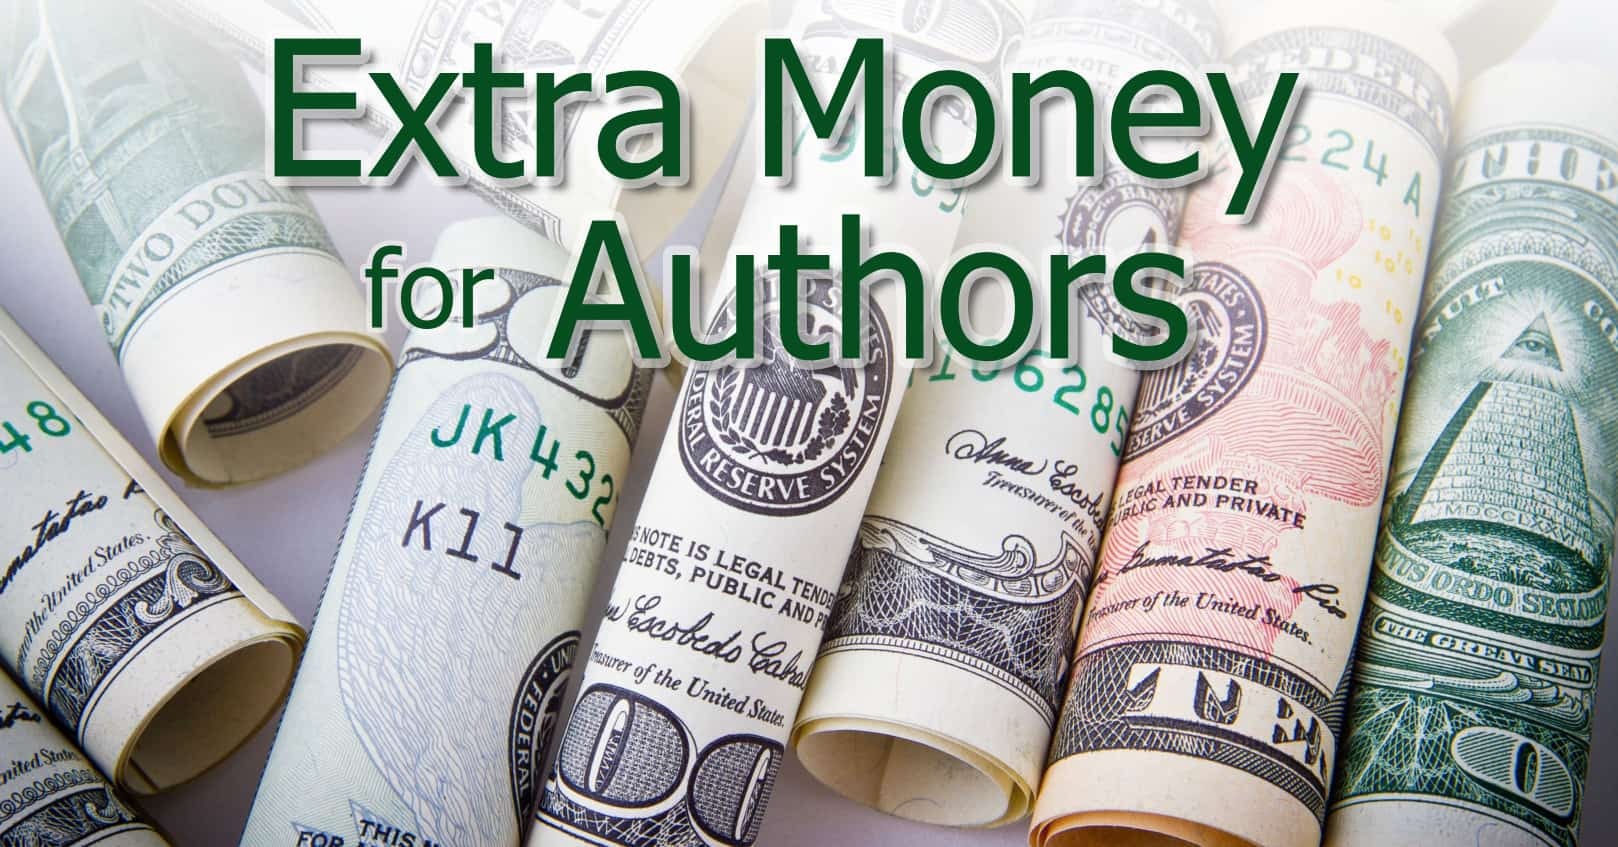 Extra Money for Authors: Designing and Offering Book Products to Readers